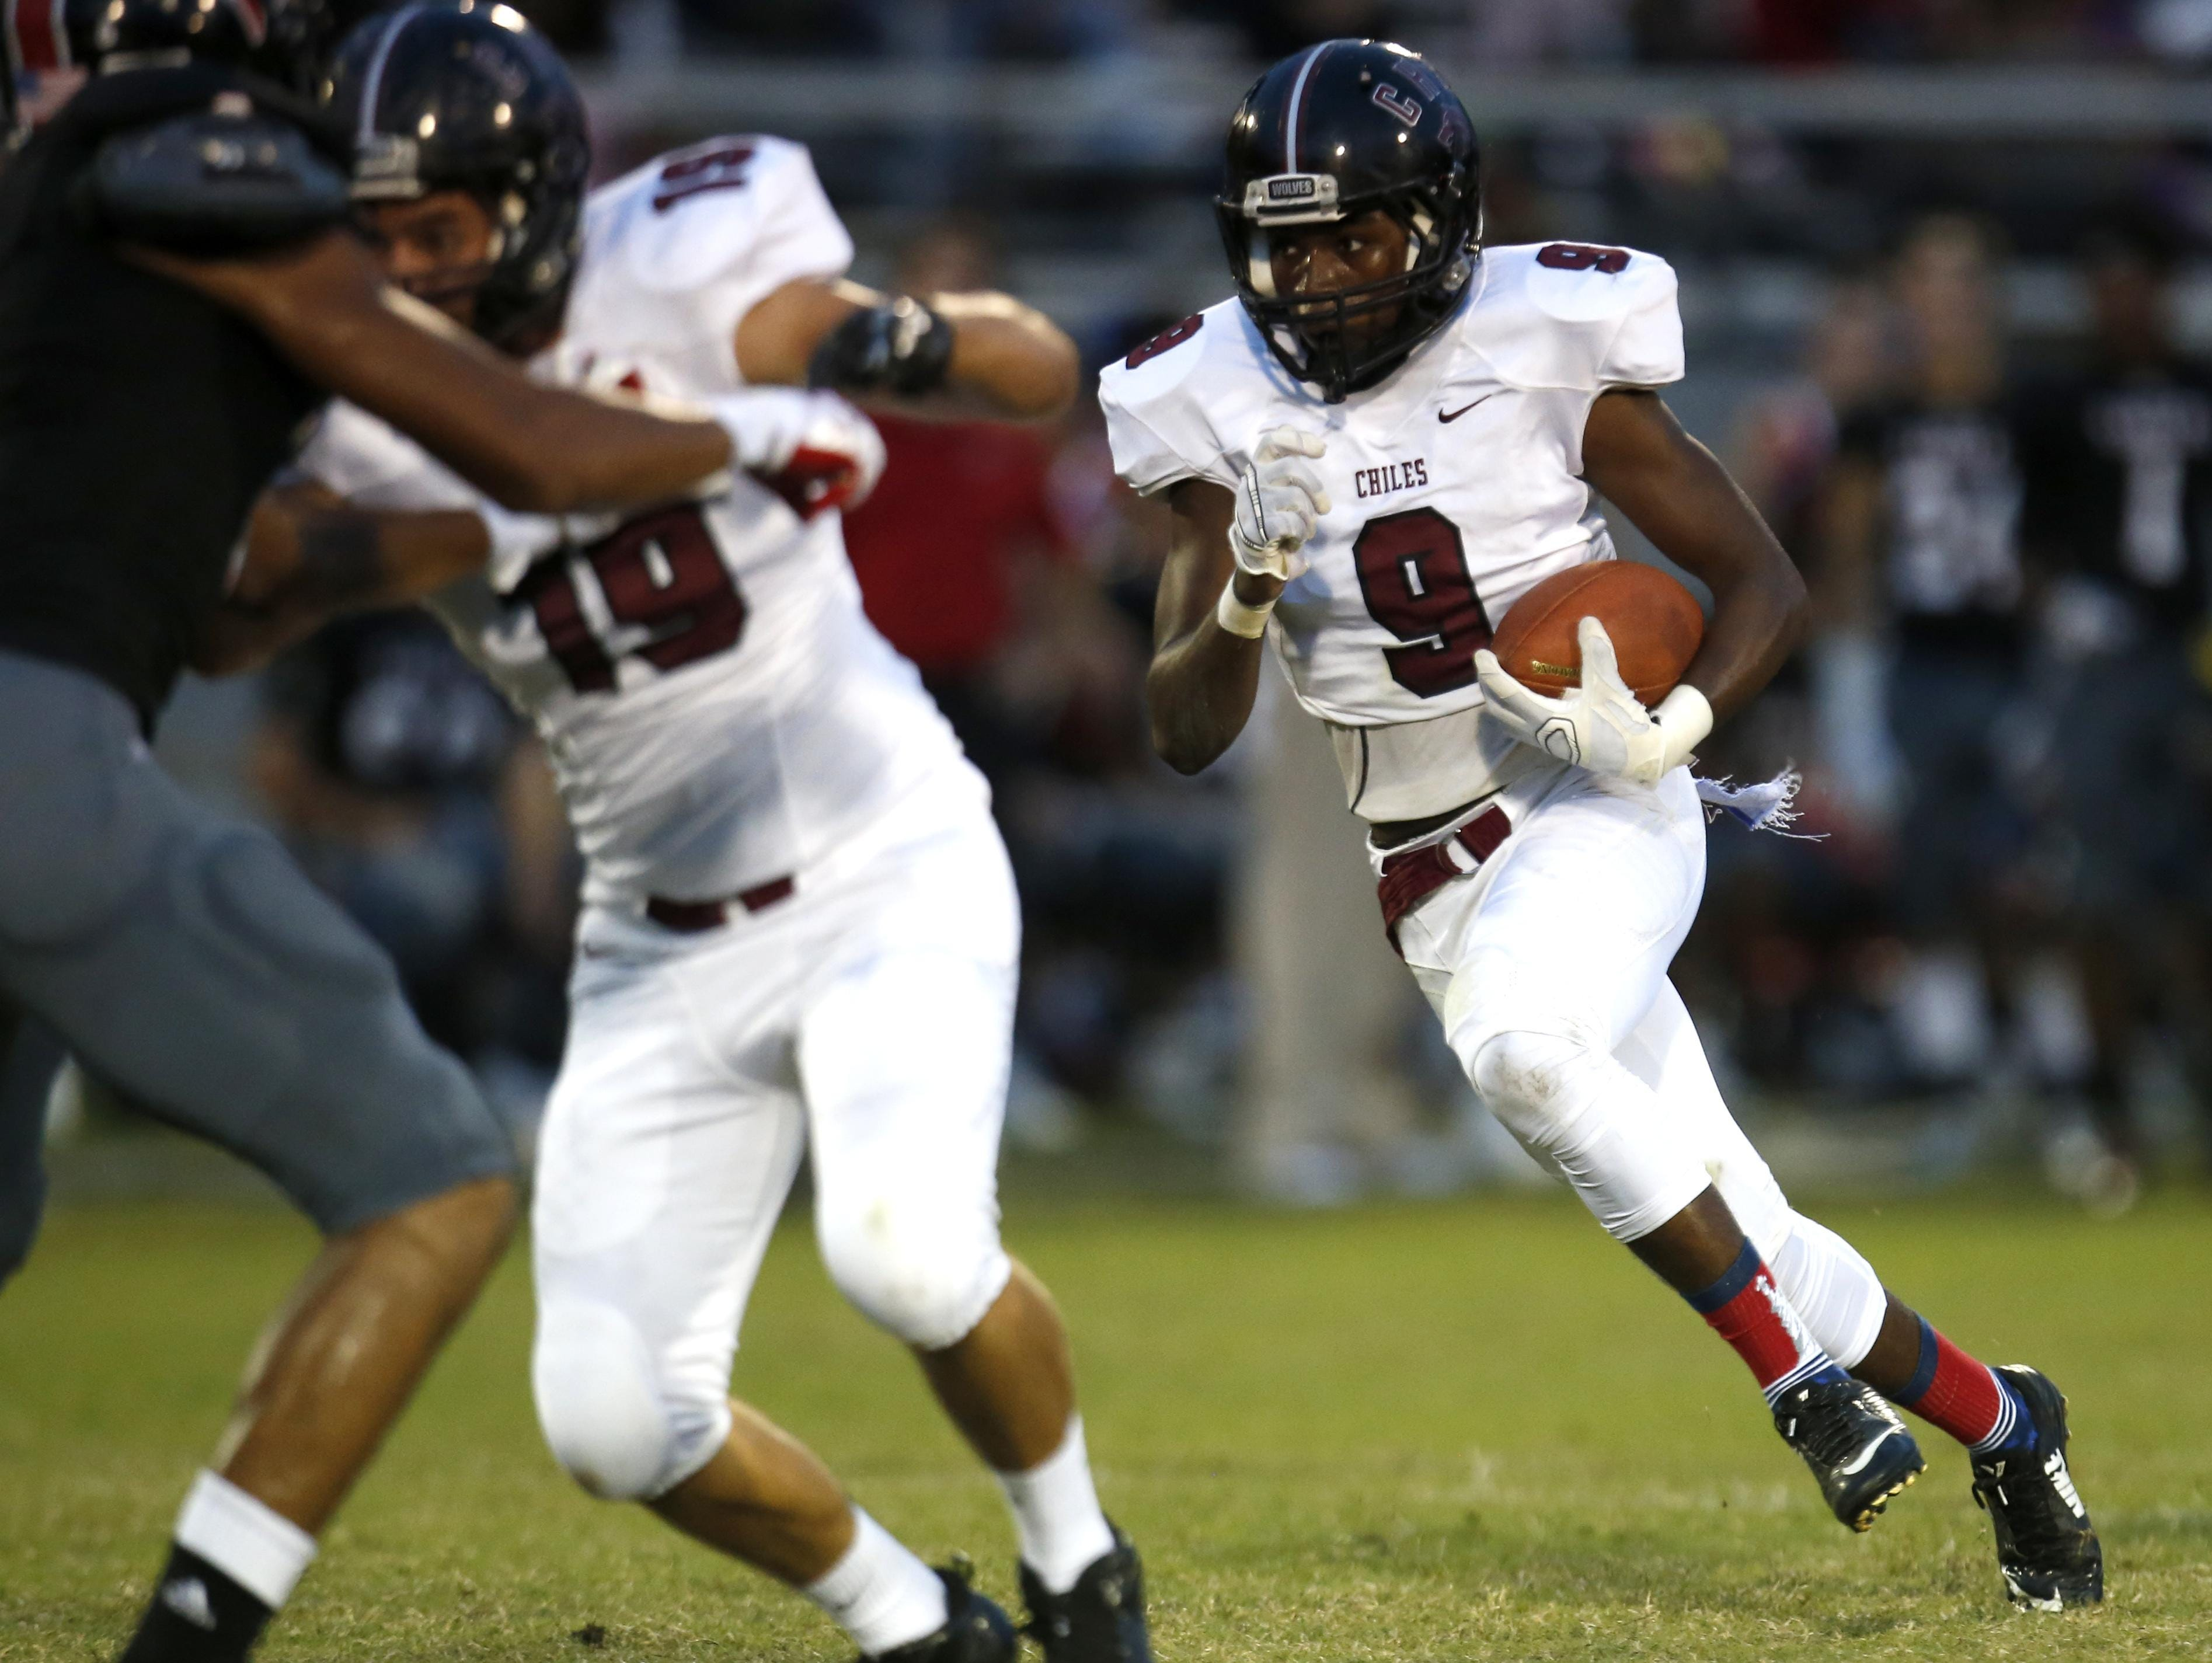 Chiles running back Shane Sanders went for a career best 221 yards rushing and 4 TD in a 38-21 win over Taylor County.